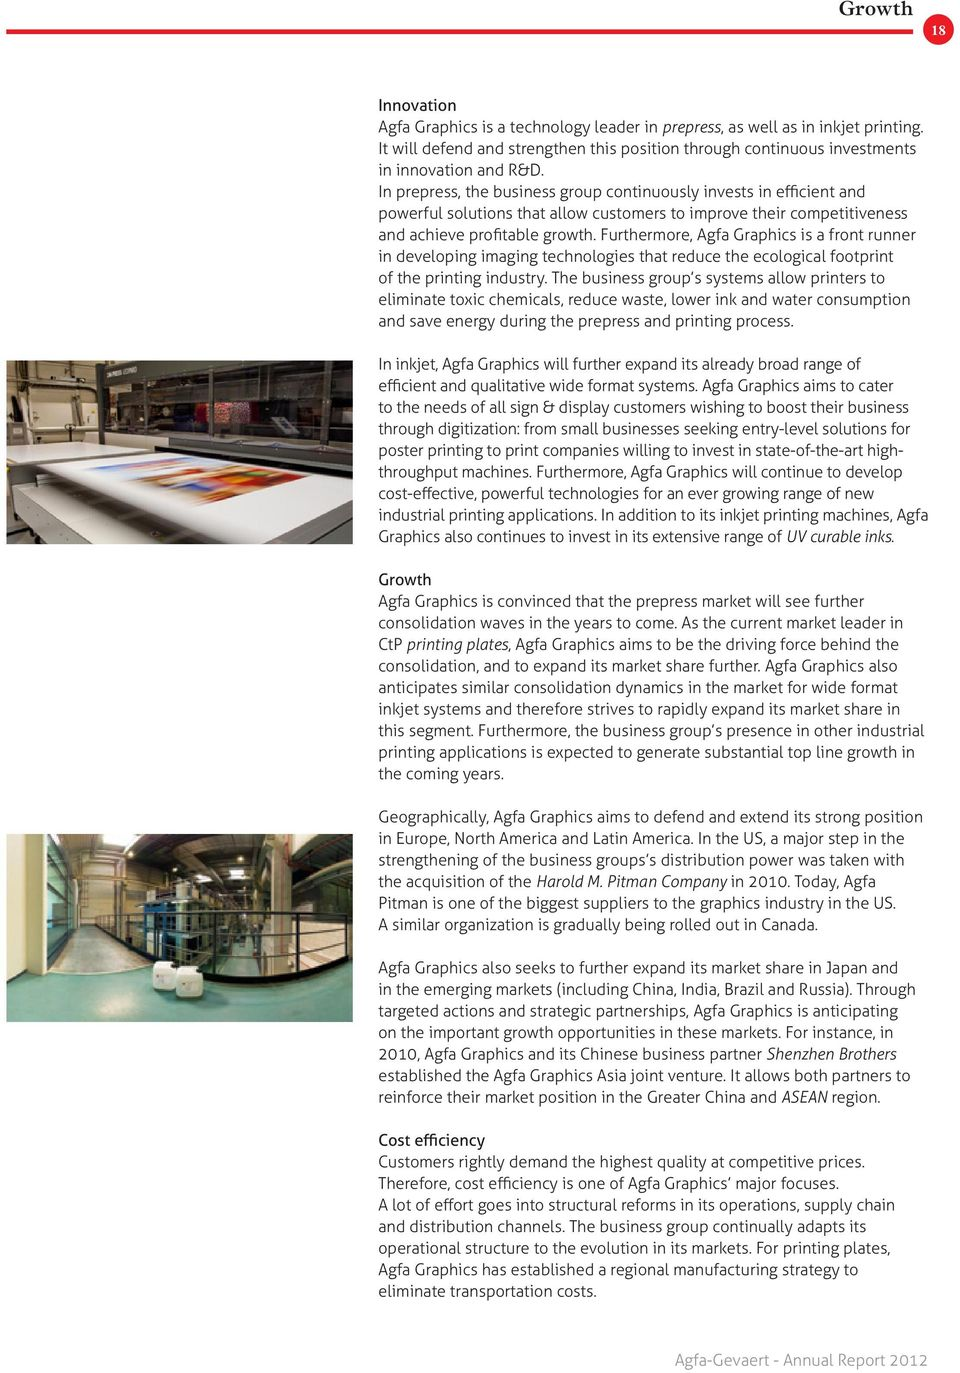 Furthermore, Agfa Graphics is a front runner in developing imaging technologies that reduce the ecological footprint of the printing industry.